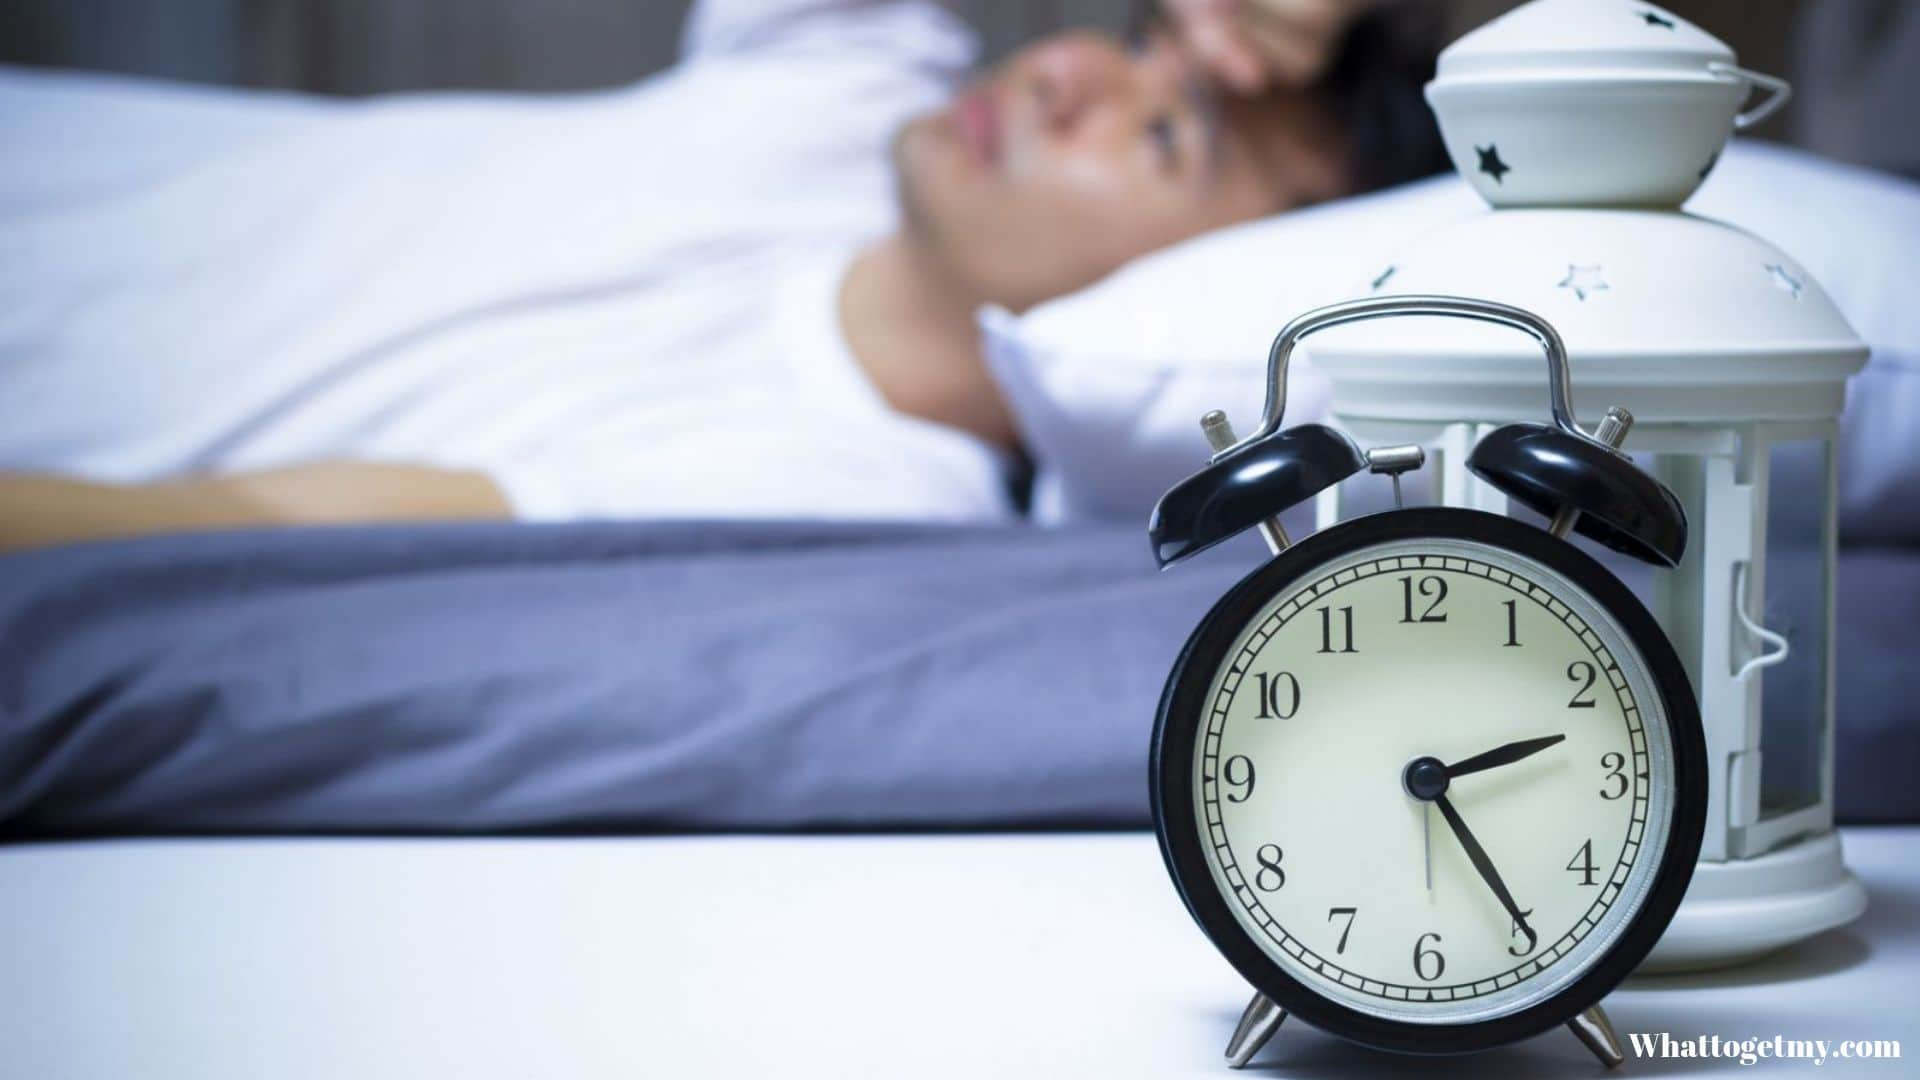 Chronic Sleeplessness and How It Affects the Body